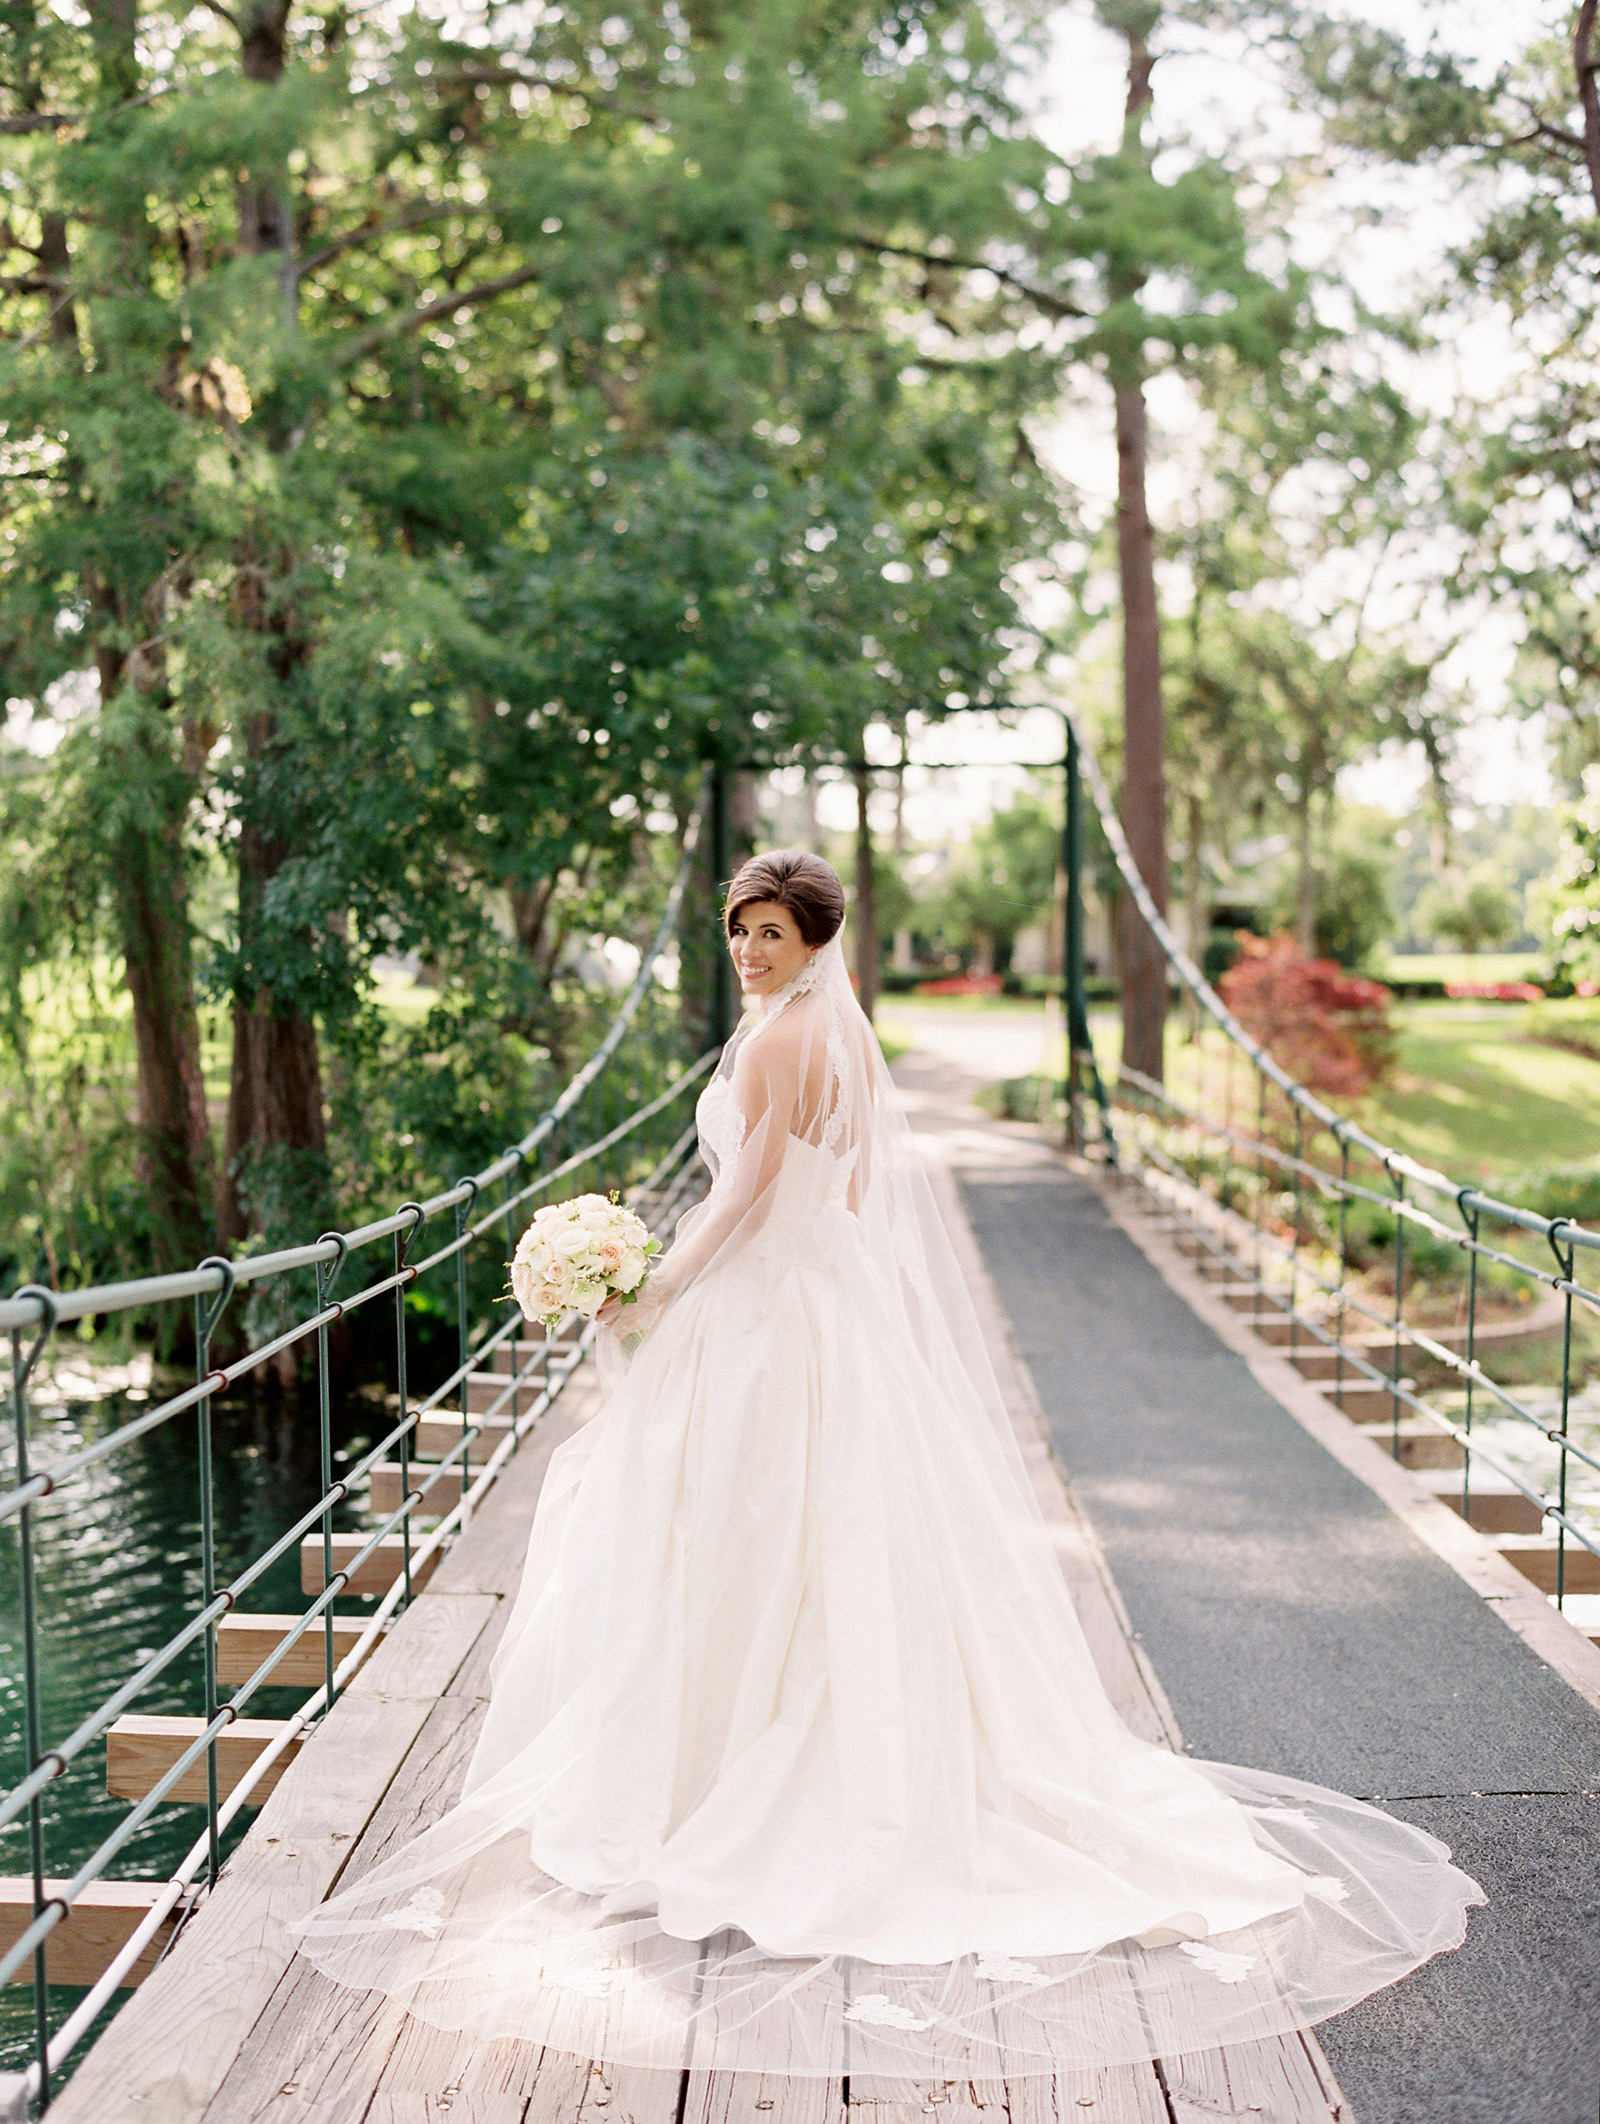 0021_0013_Houston-Lakeside-Country-Club-Film-Bridal-Photographer.jpg